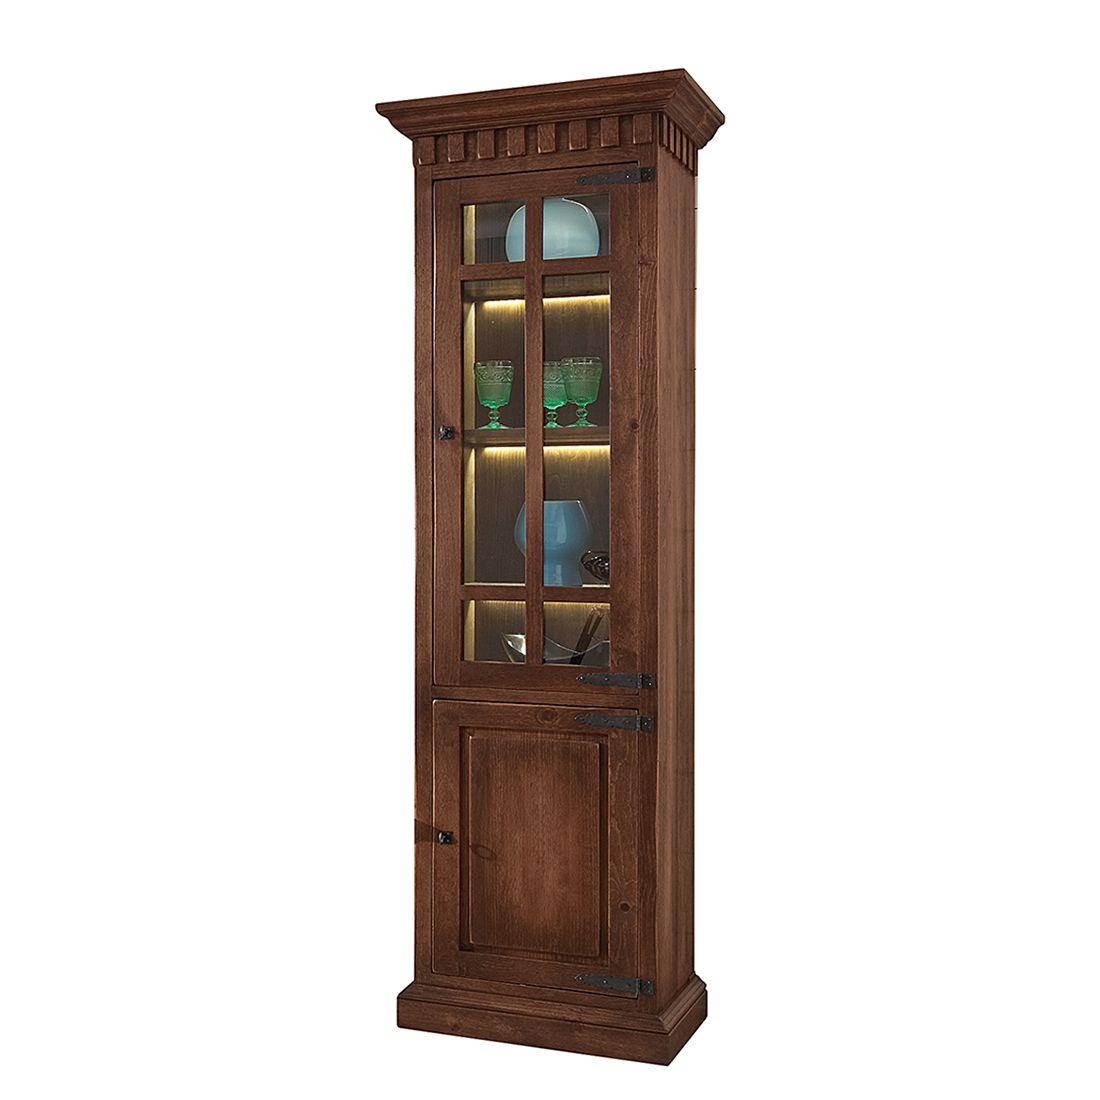 EEK A+, Armoire vitrine Vicuna I - Pin massif - Marron - Avec éclairage, Landhaus Classic